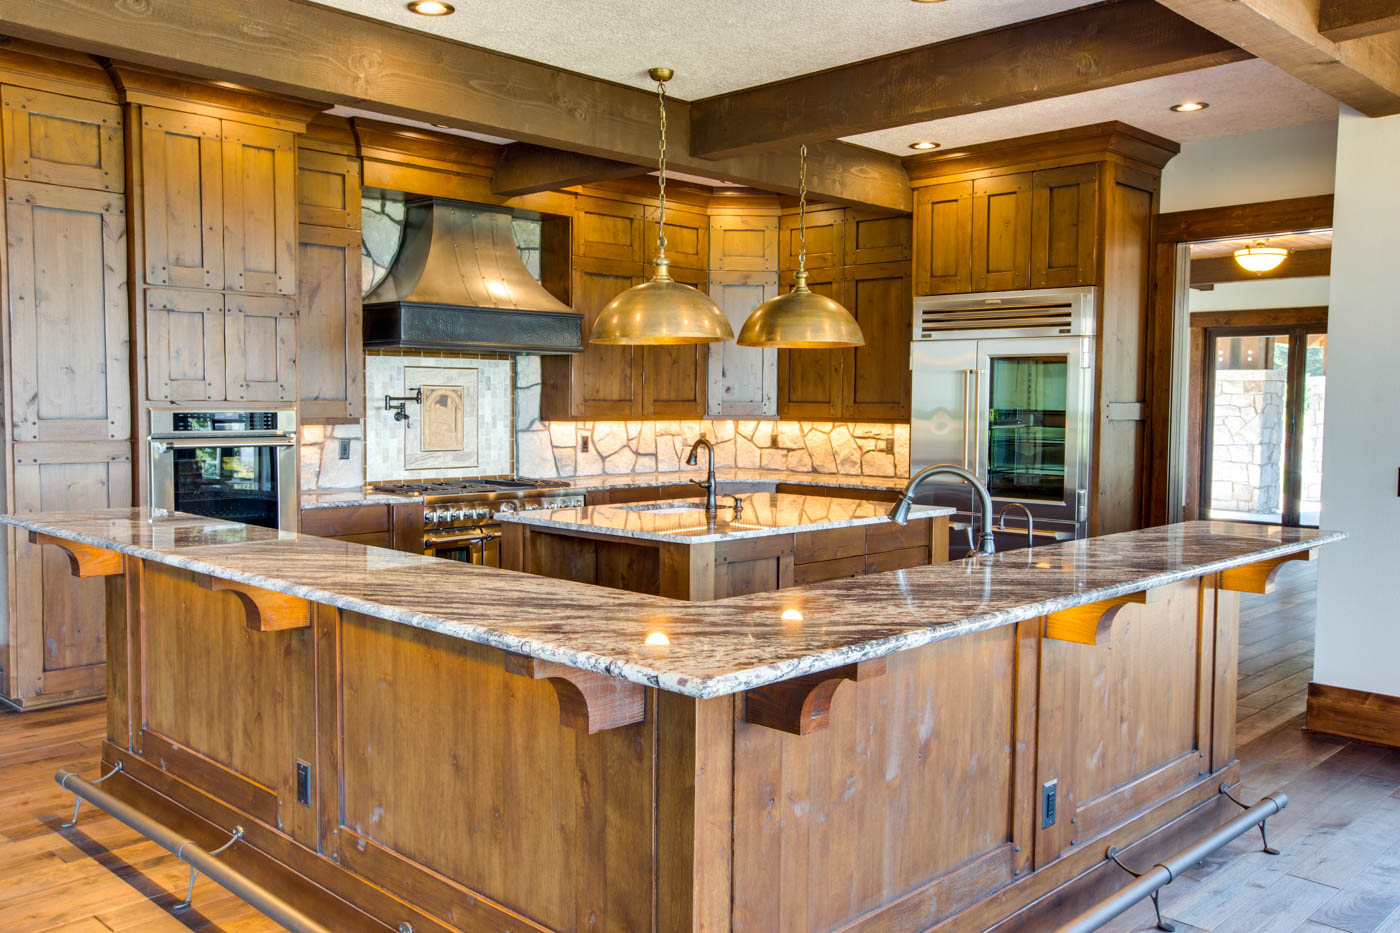 kitchen_18010-s-ramsby-rd_074_webres